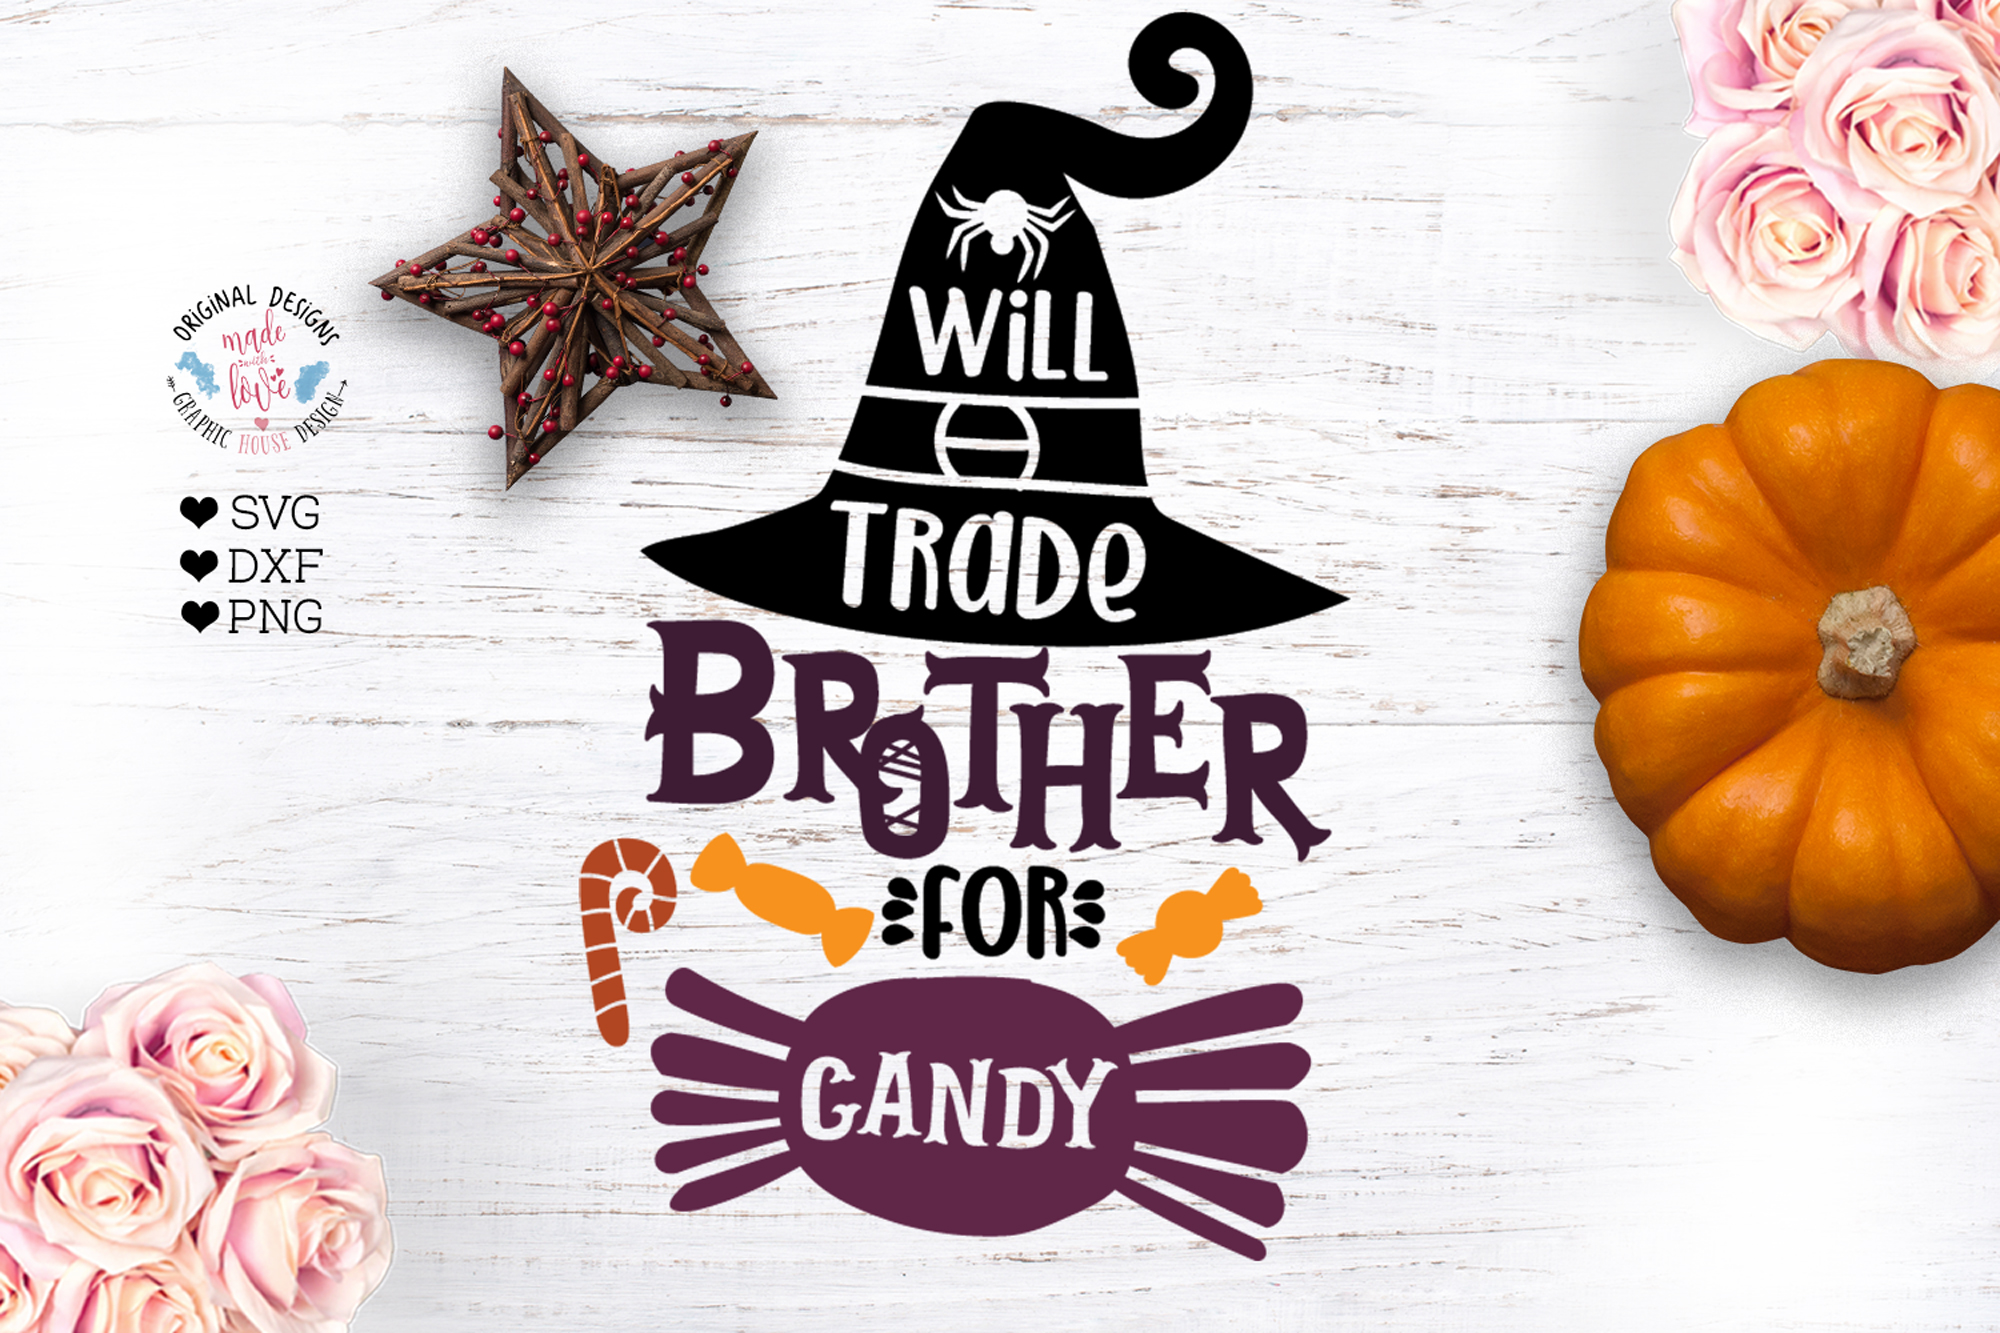 Will Trade Brother For Candy - Halloween Cut File example image 1